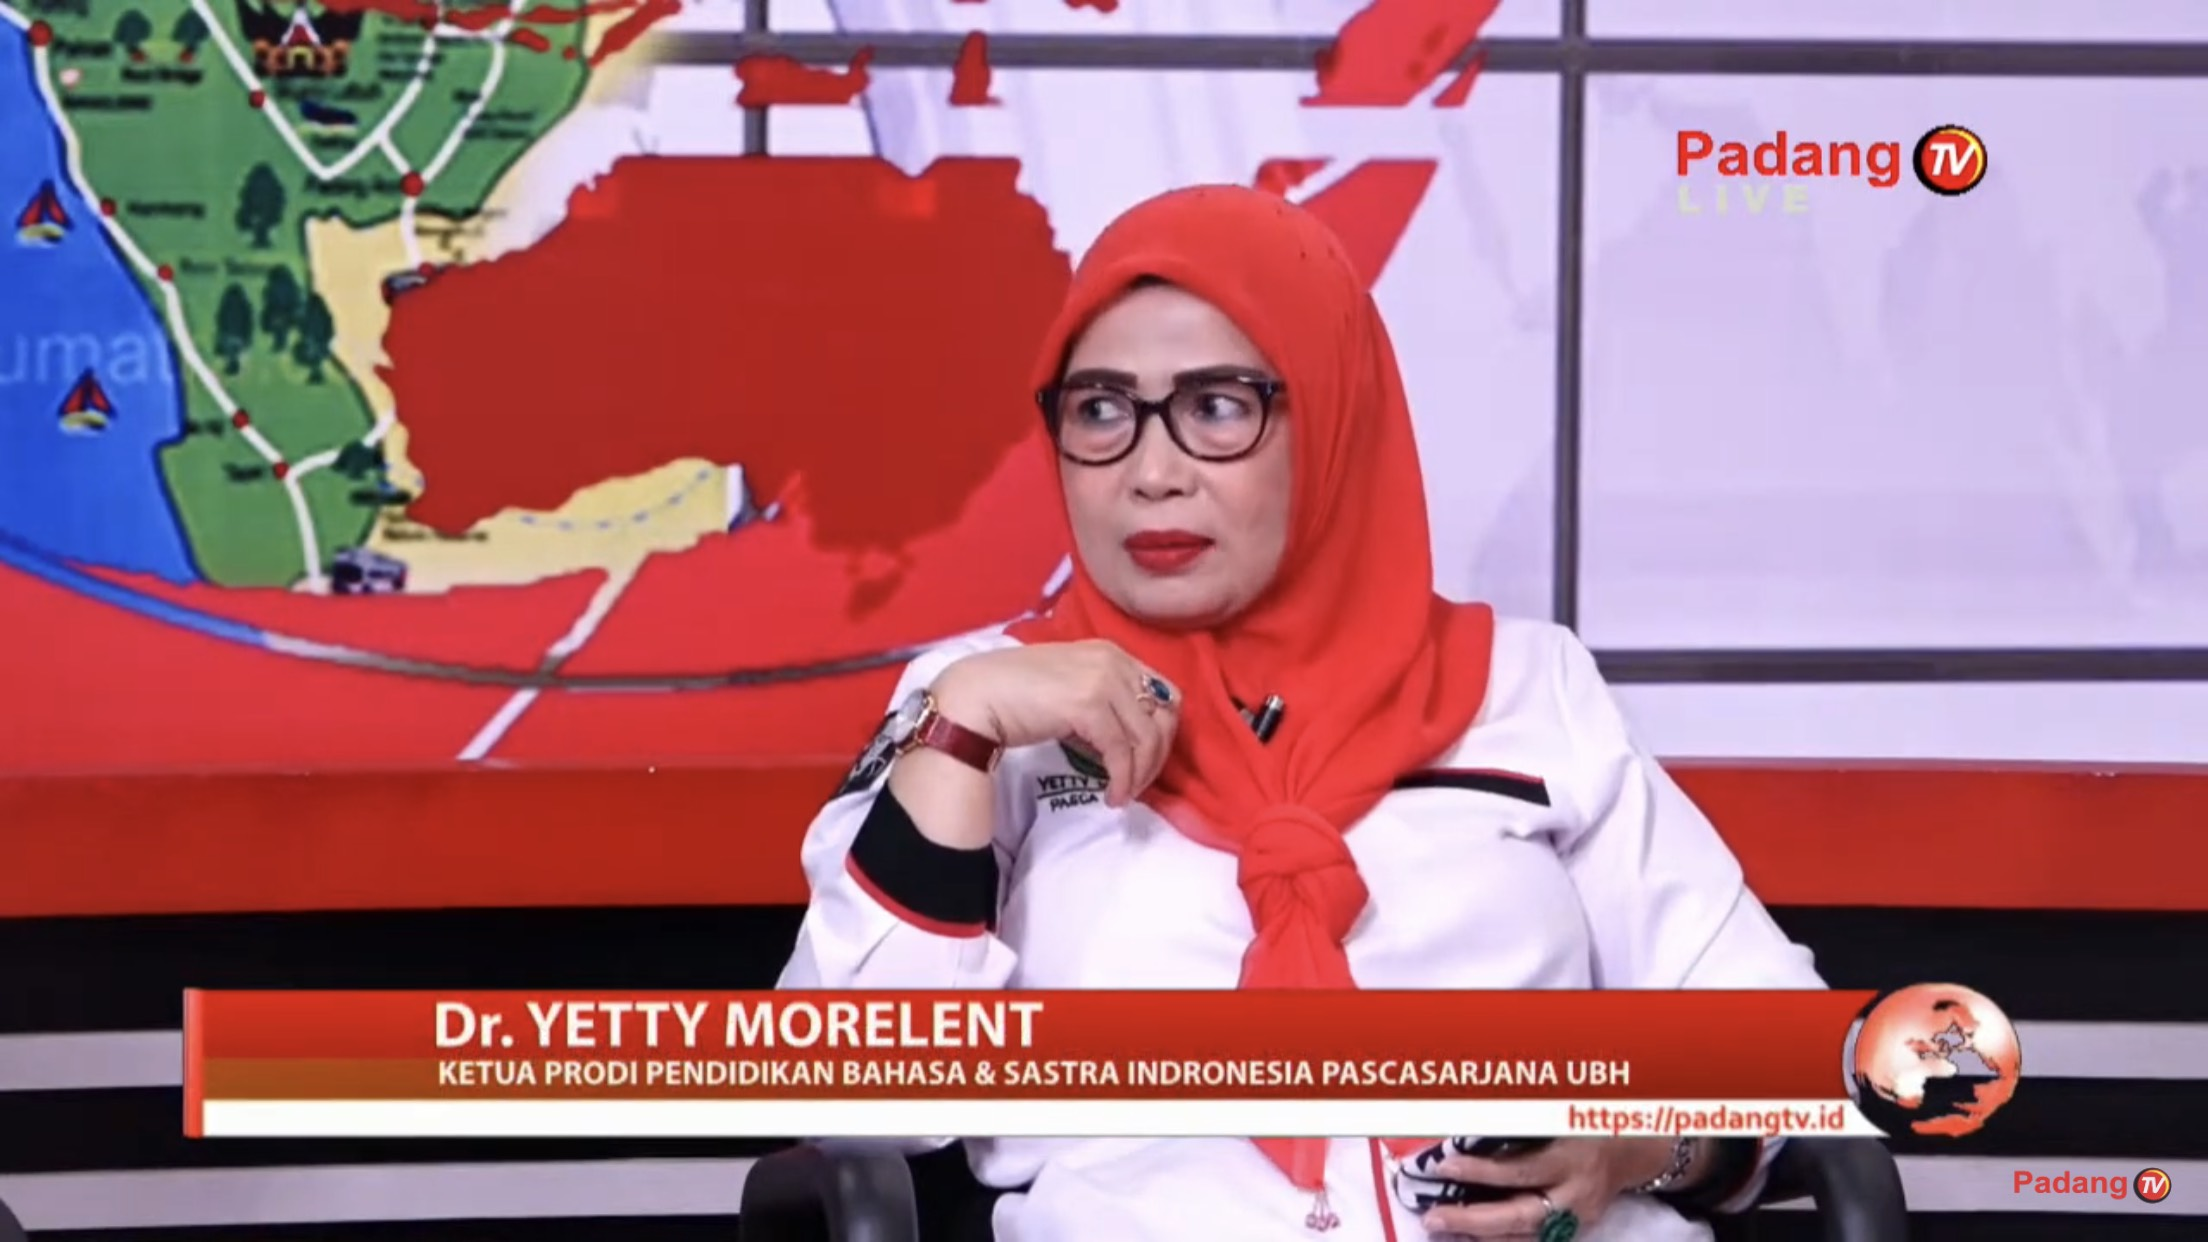 Dr. Yetty Morelent